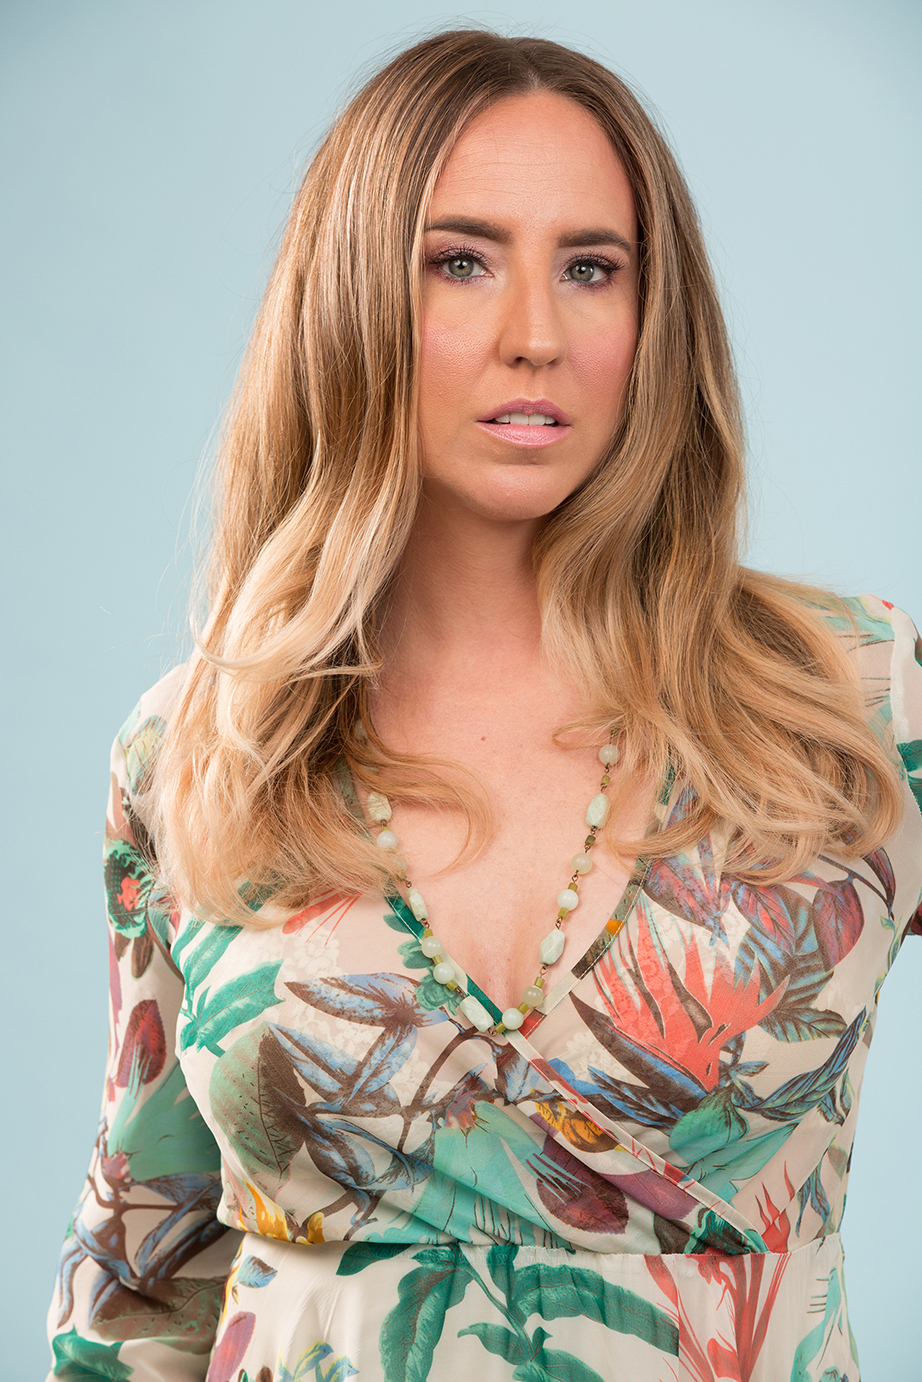 blonde woman in tropical floral wrap dress